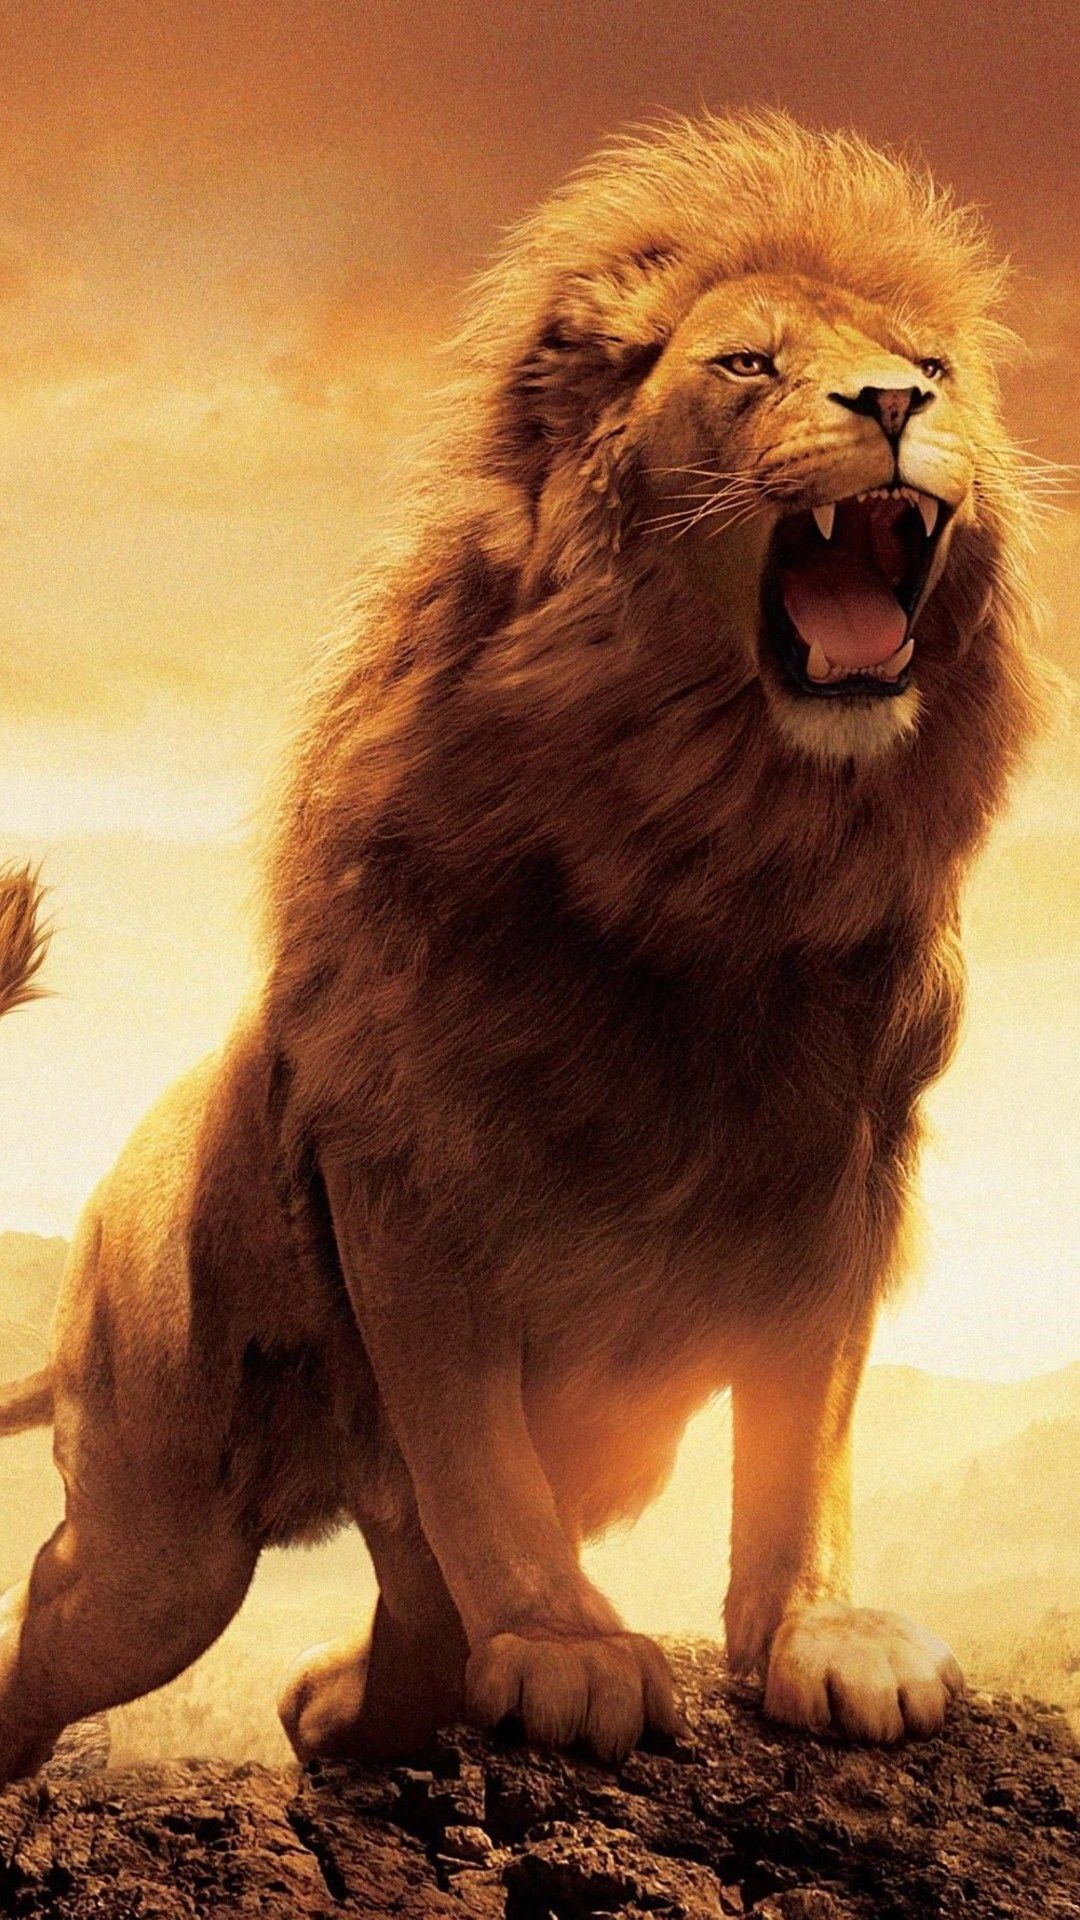 Lion Iphone Android Iphone Desktop Hd Backgrounds Wallpapers 1080p 4k In 2020 Lion Wallpaper Iphone Lion Pictures Lion Wallpaper